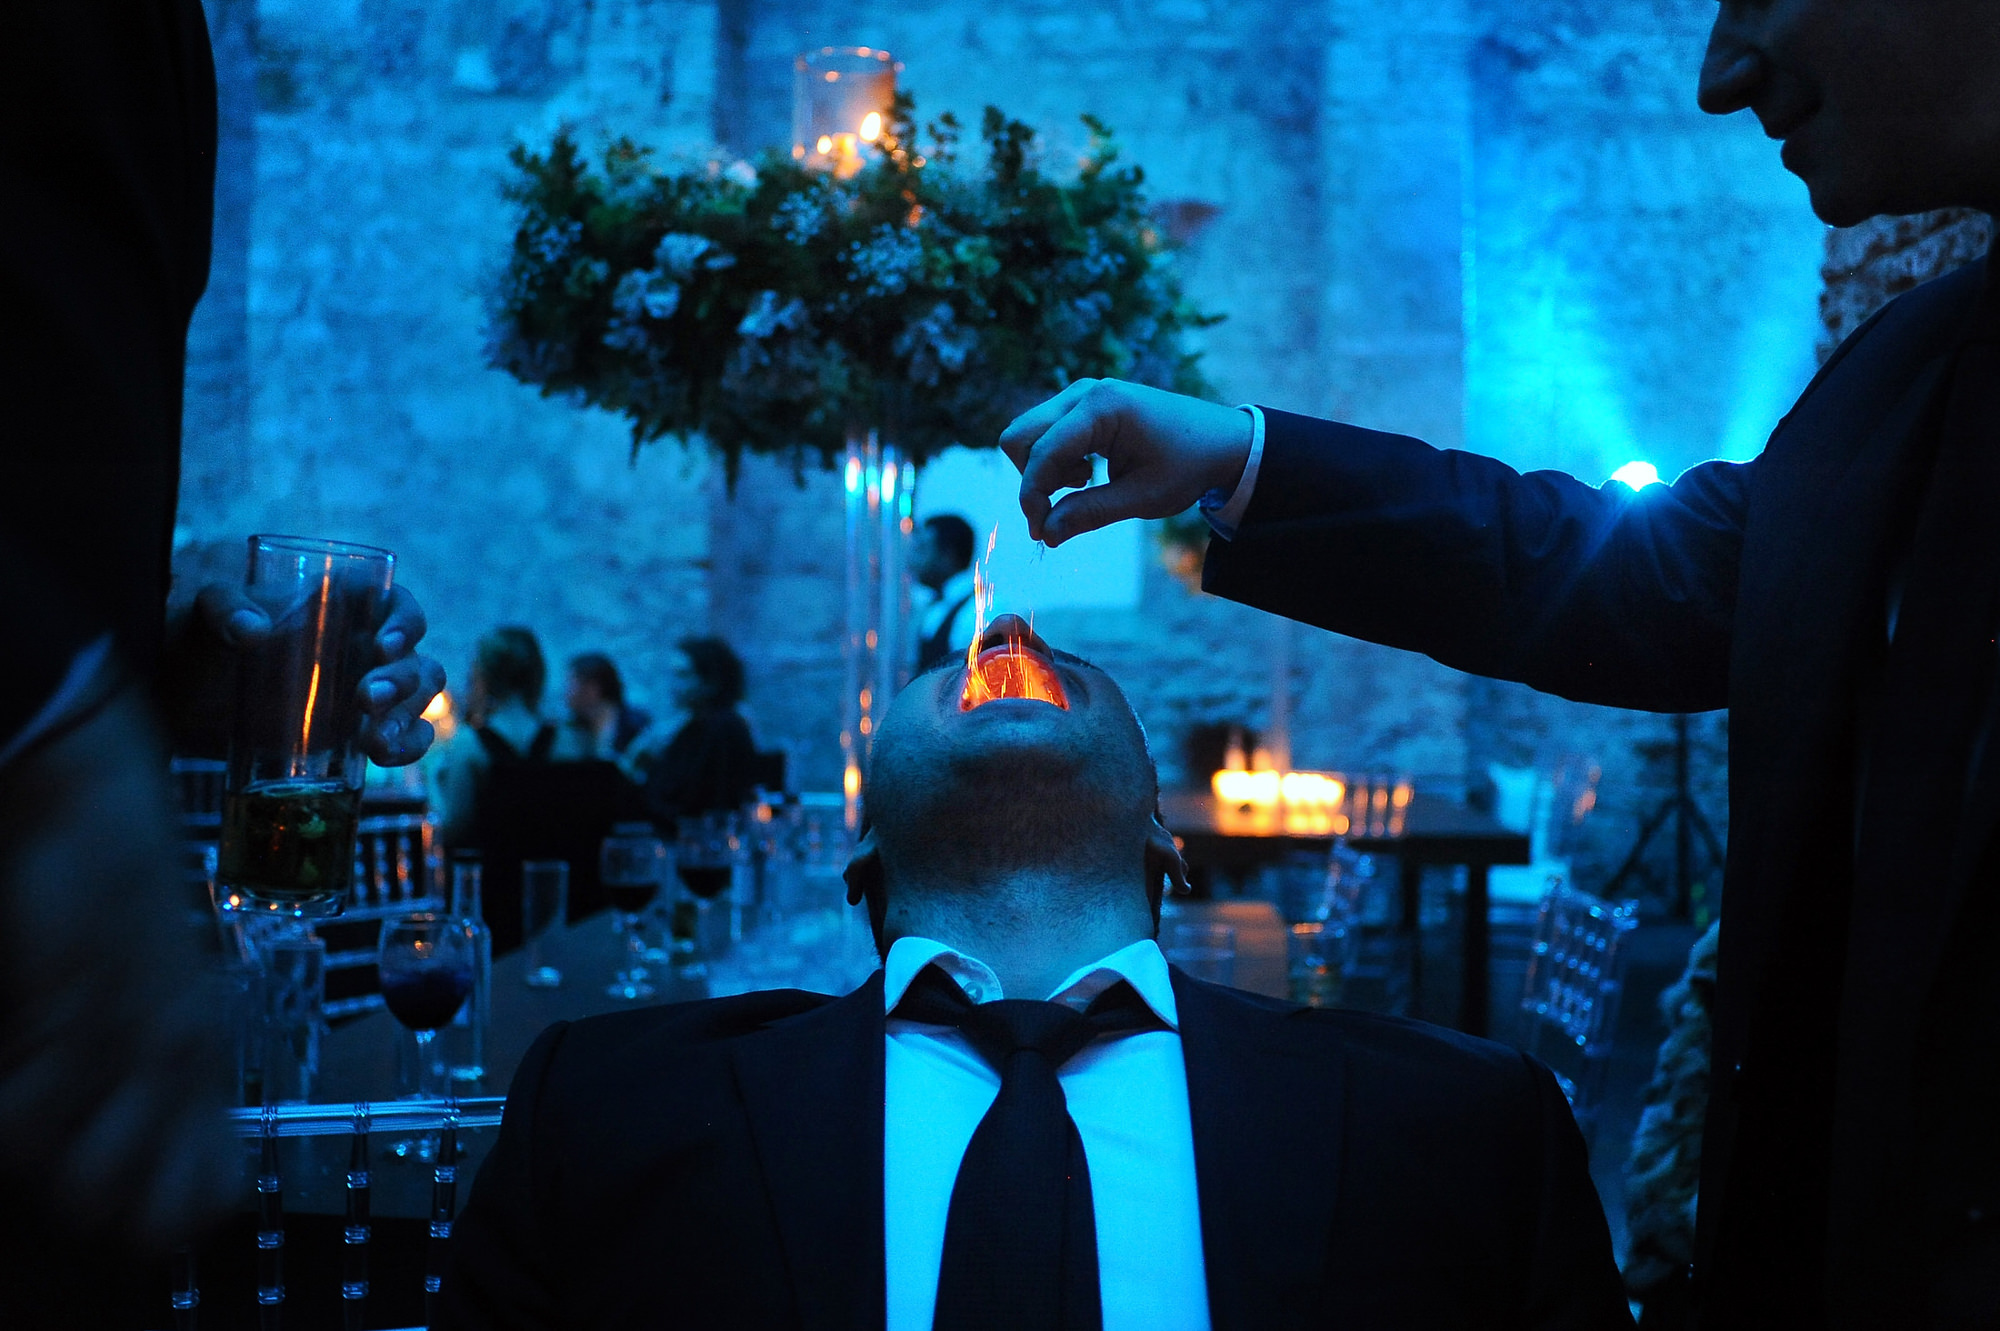 Groom performs ceremony with lit flame in his mouth - photo by Daniel Aguilar - Houston Texas